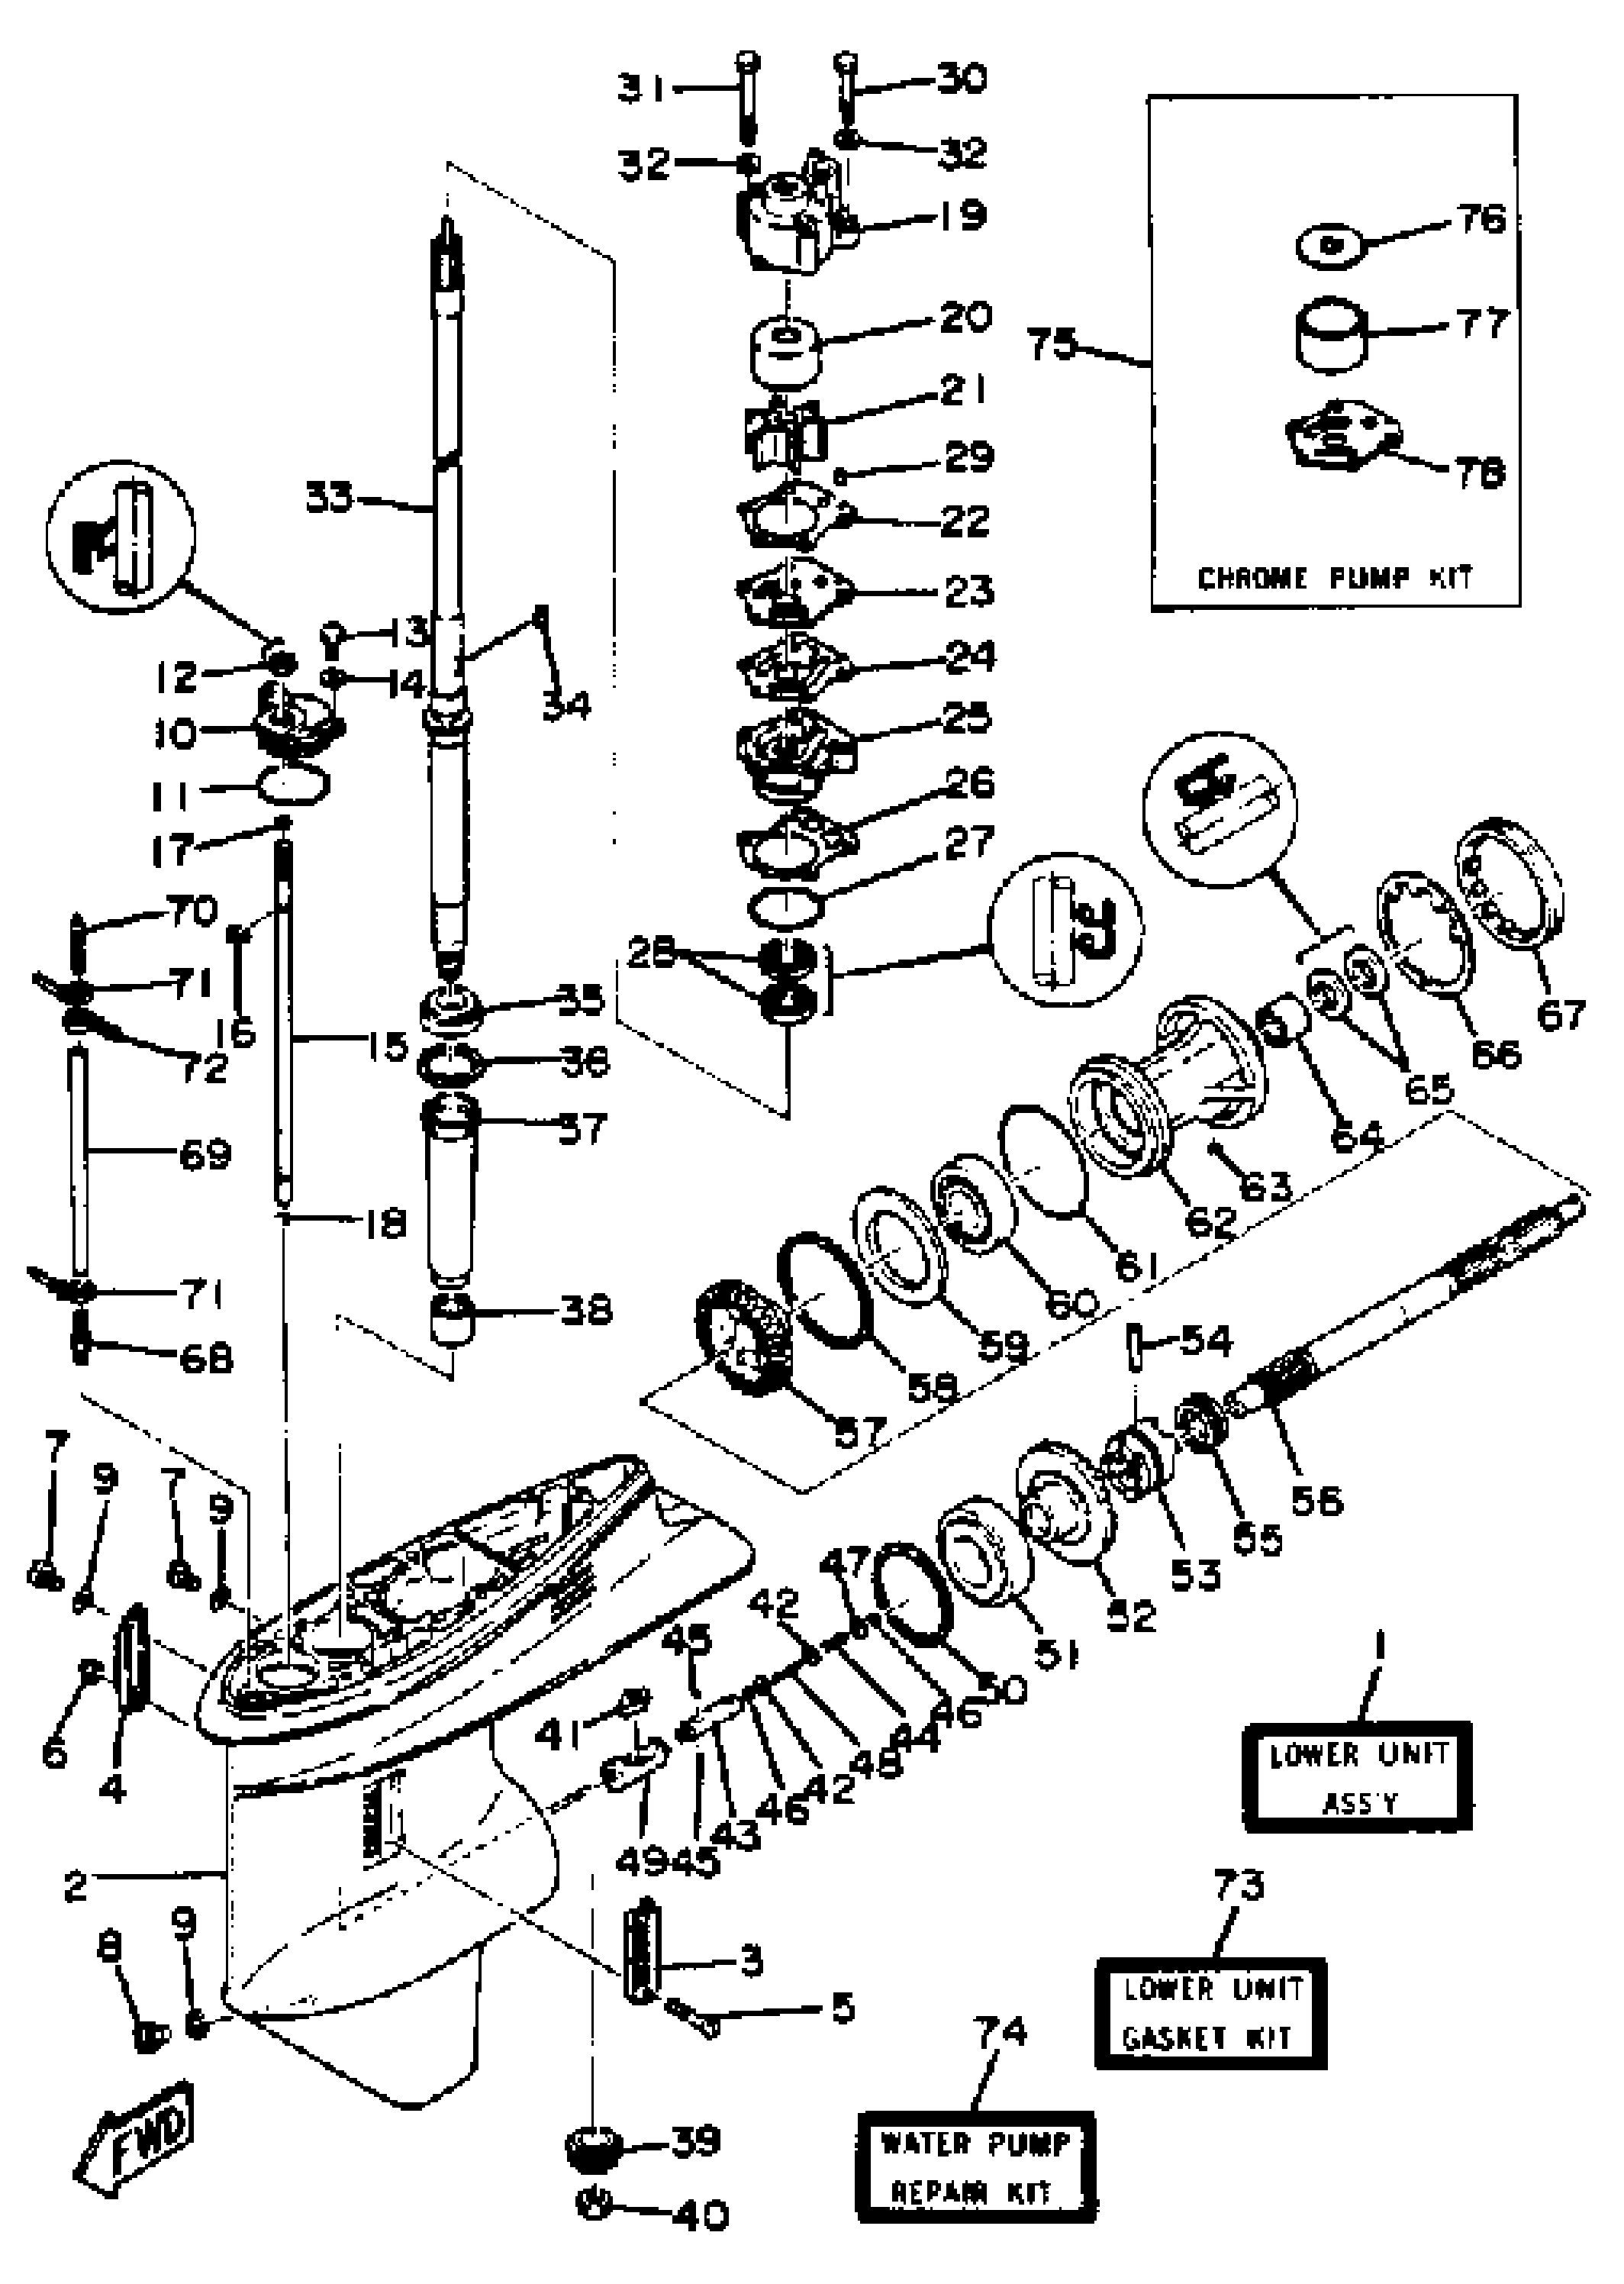 How to change the water pump impellor on a 90hp Yamaha?